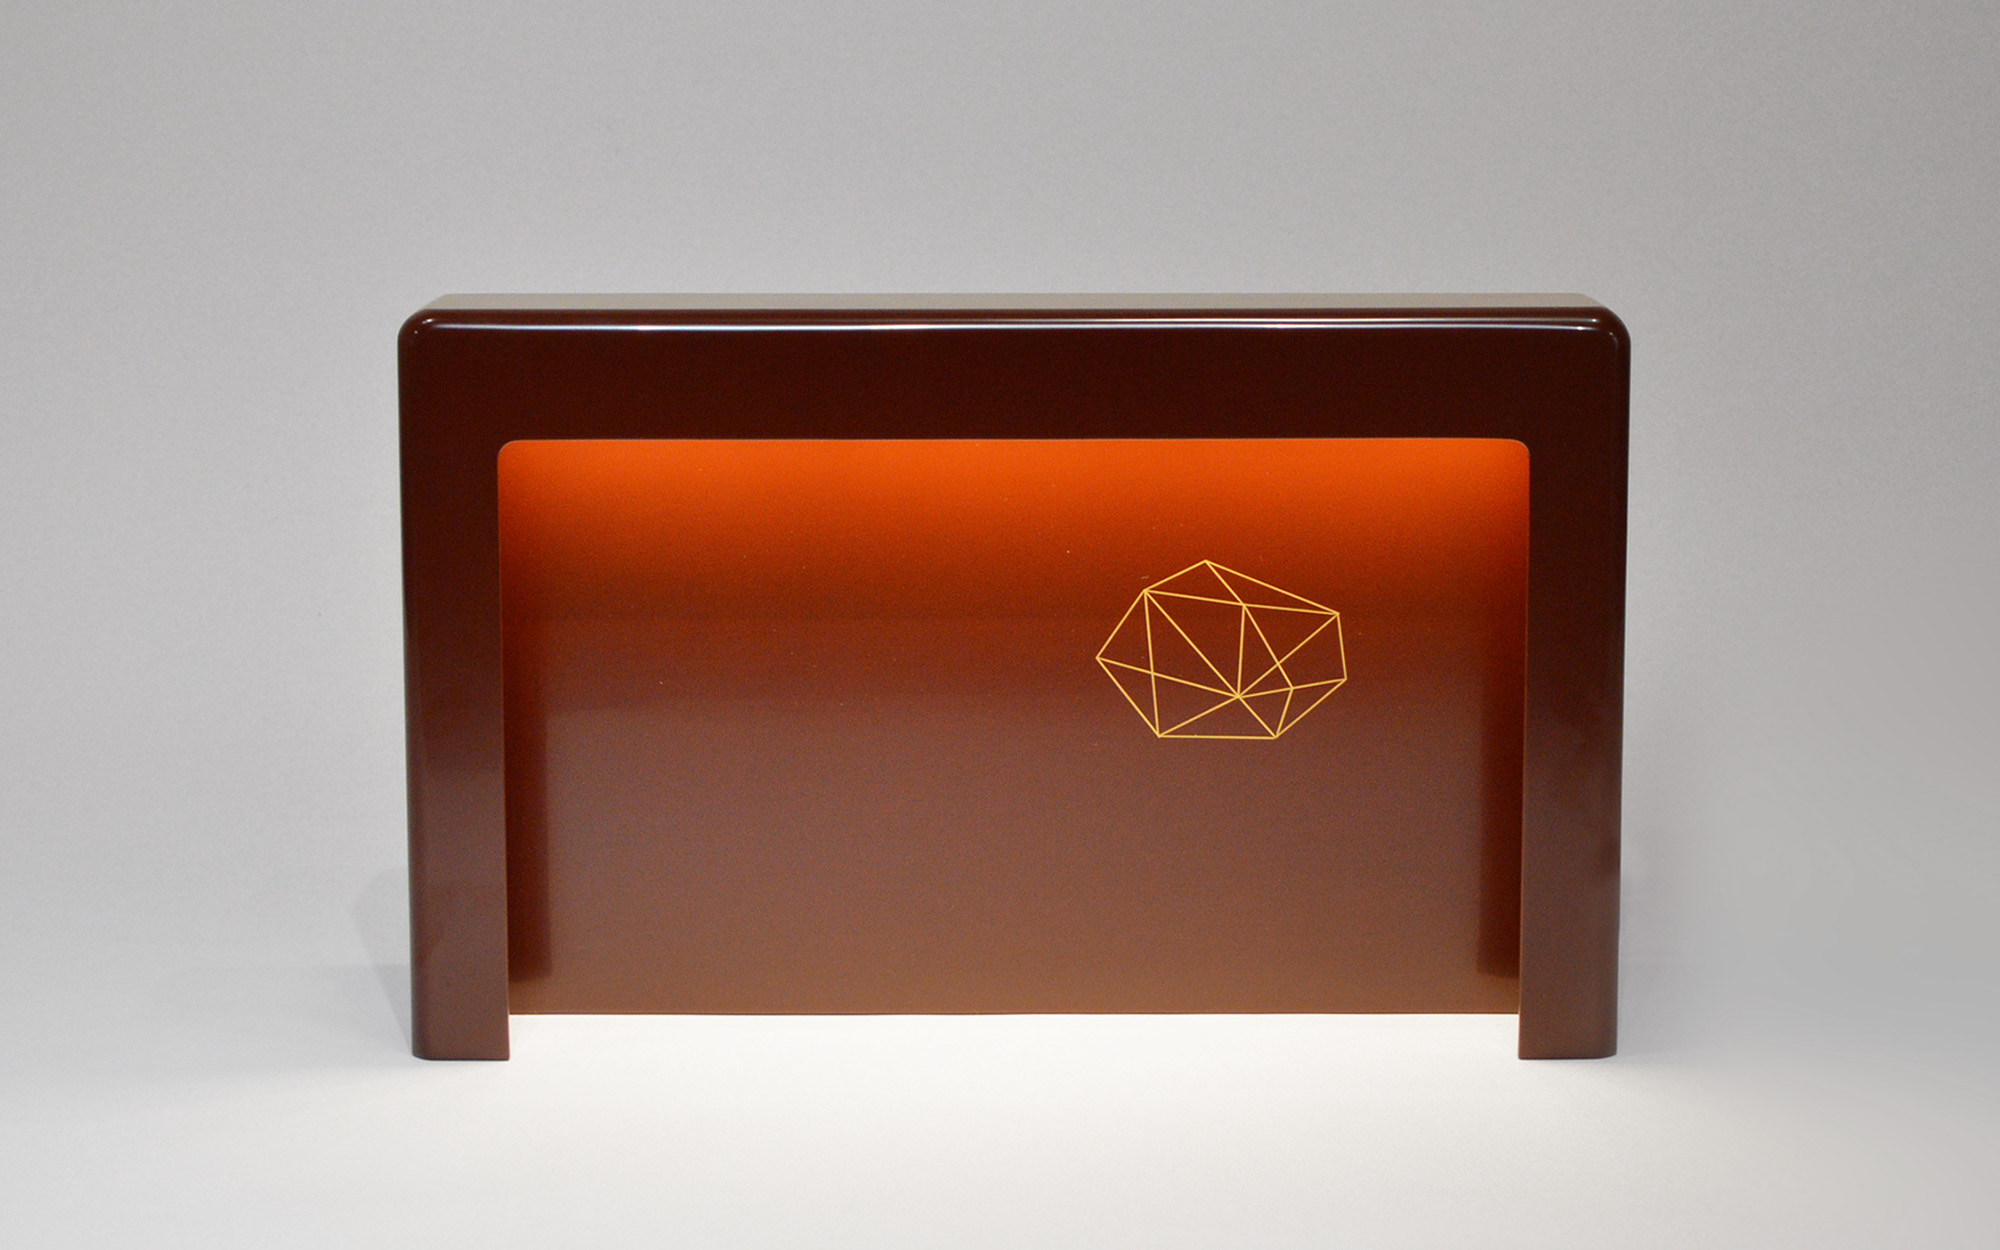 Ronan & Erwan Bouroullec Light Screen Urumi - Brown